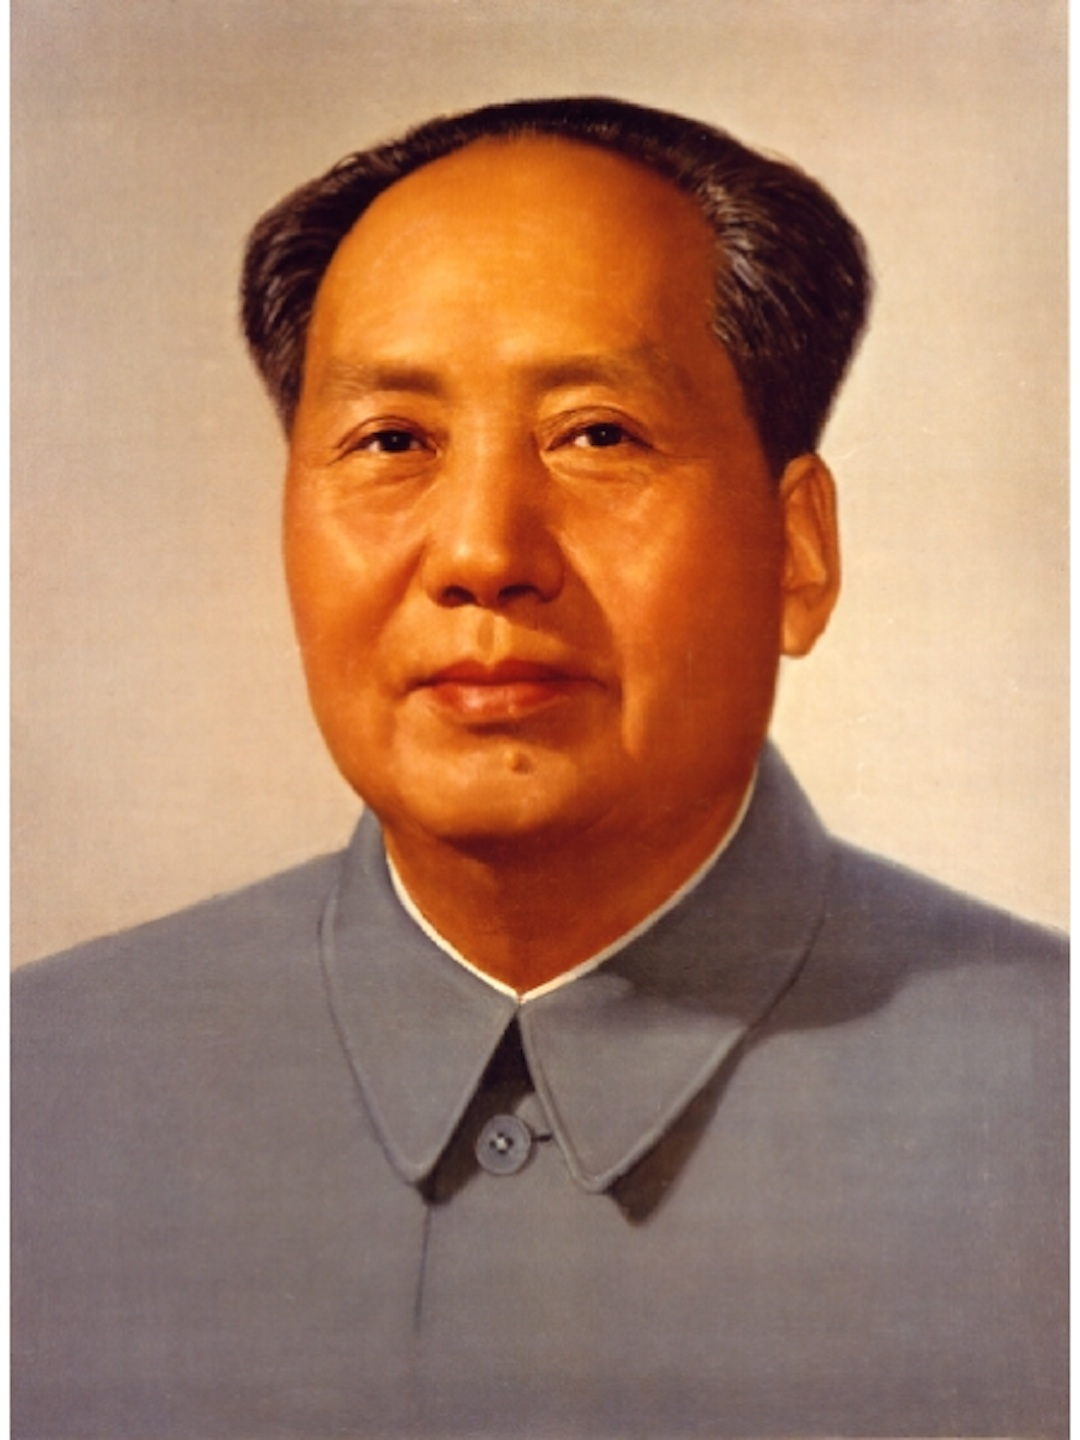 mao_portrait-1